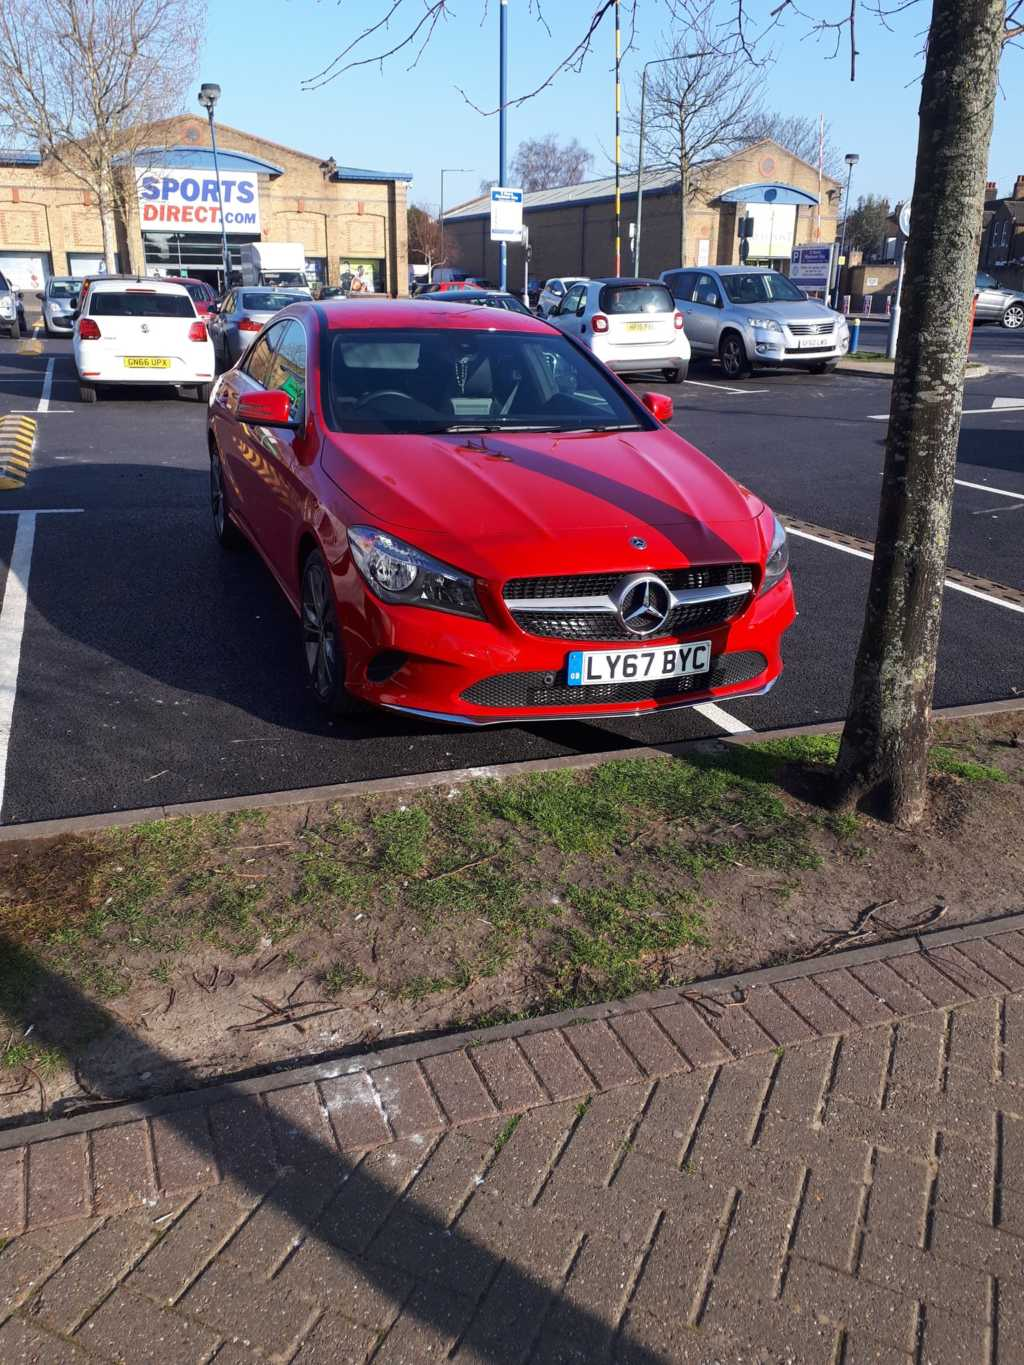 LY67 BYC displaying crap parking